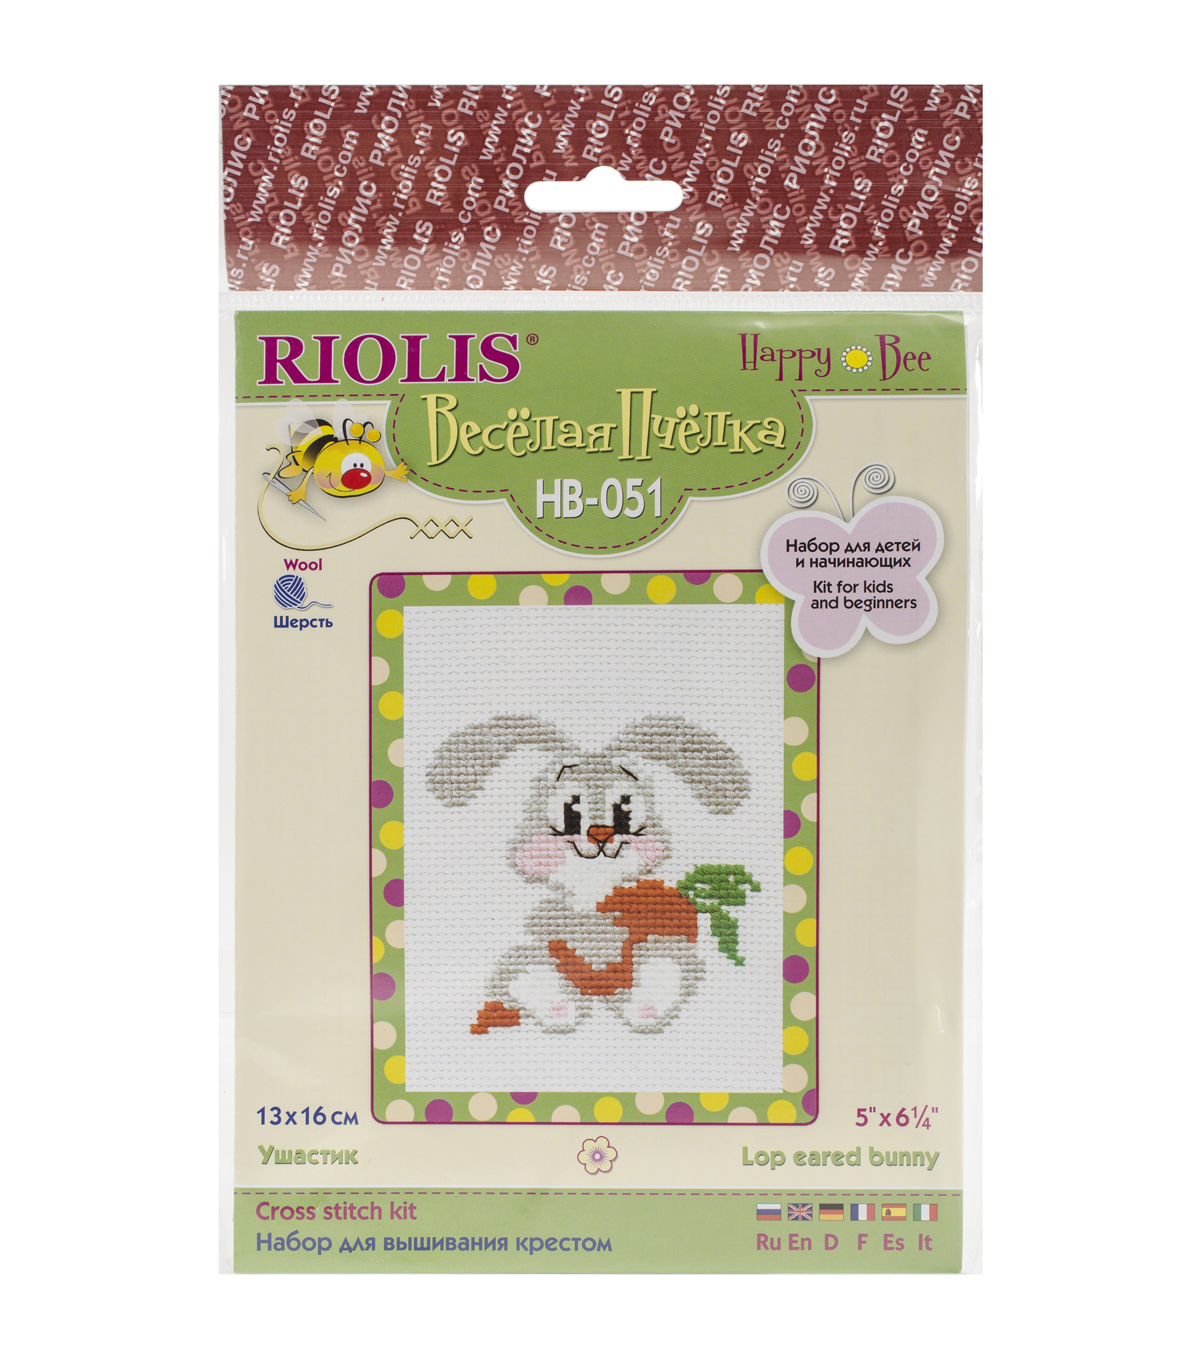 Riolis 5''x6.25'' Counted Cross Stitch Kit-Lop-Eared Bunny